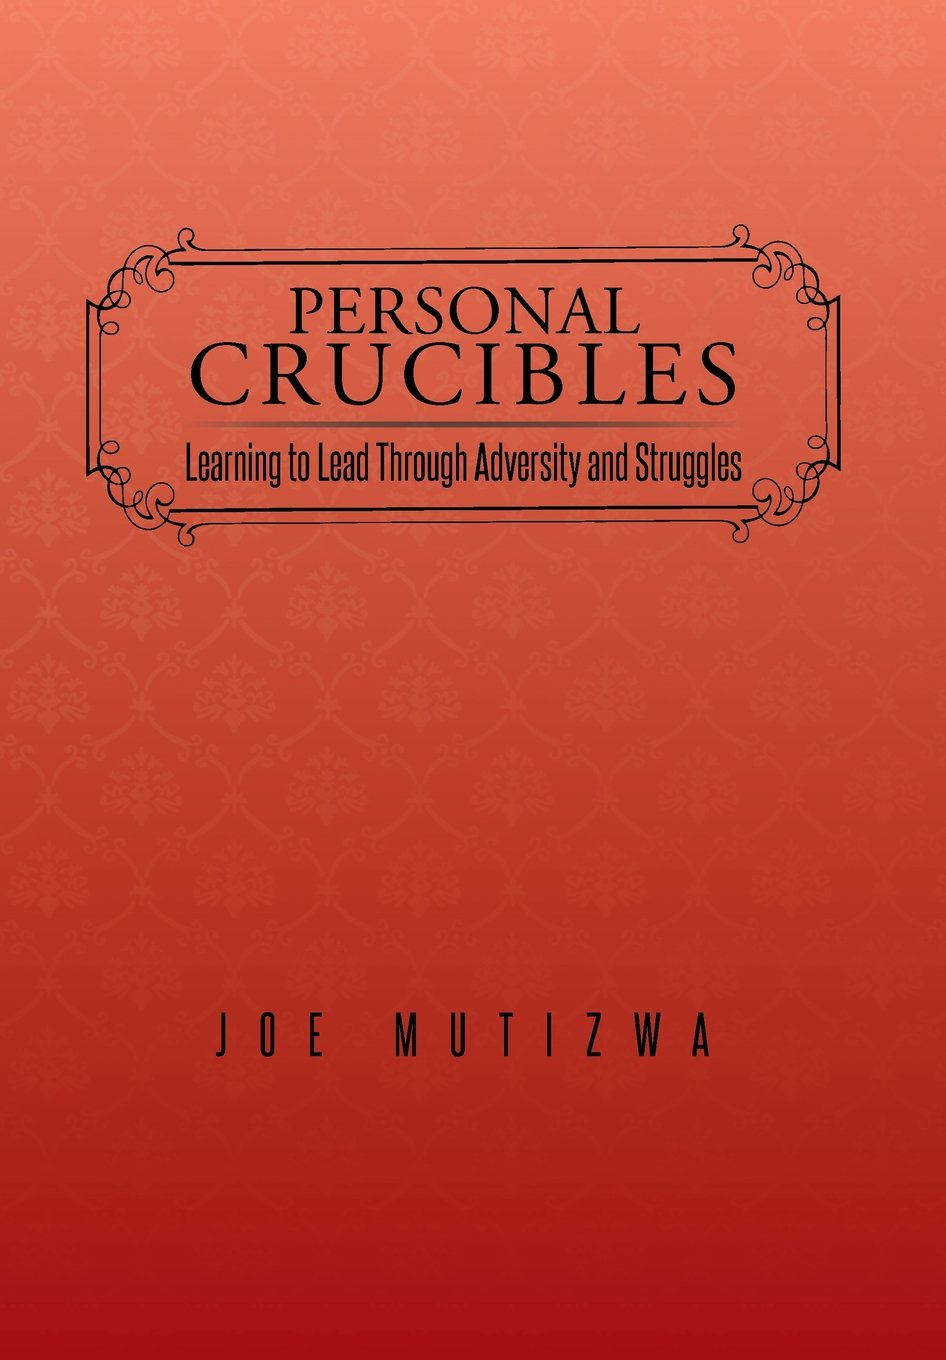 Read Online Personal Crucibles: Learning to Lead Through Adversity and Struggles PDF